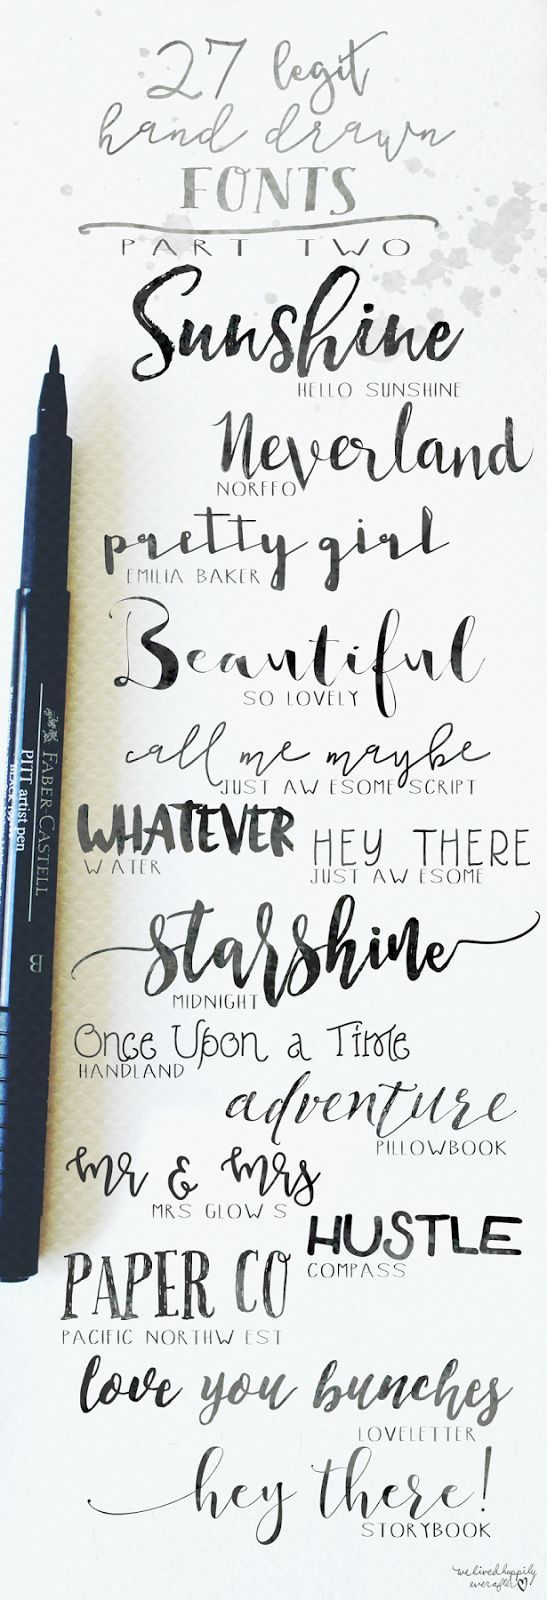 27 Legit Hand Drawn Fonts Pretty FontsHandwriting